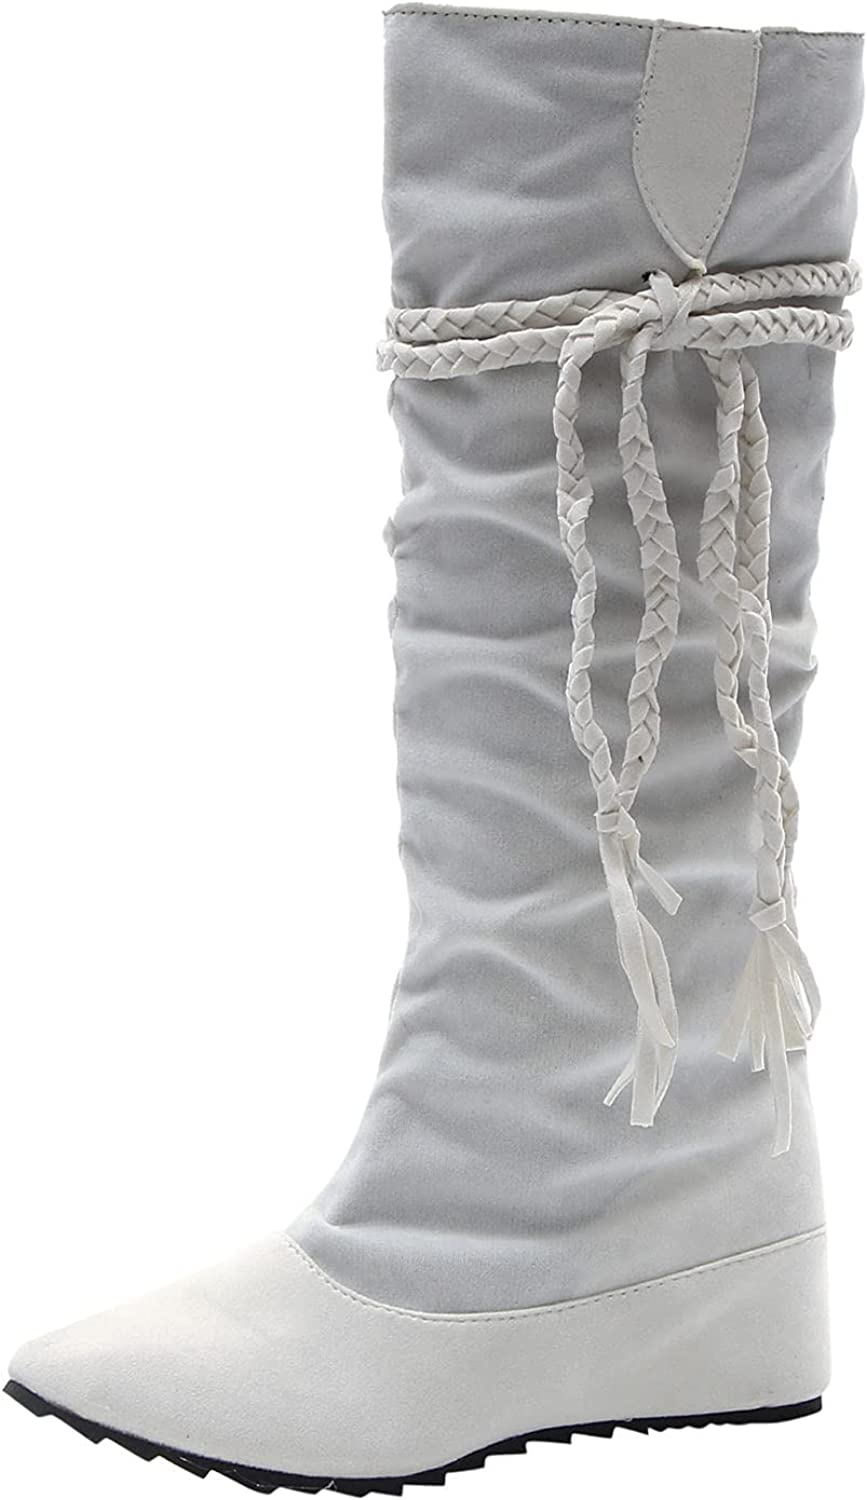 Womens Mid Calf Boots Chunky Heel Embroidered Vintage Cowgril Cowboy Western Knee High Boots